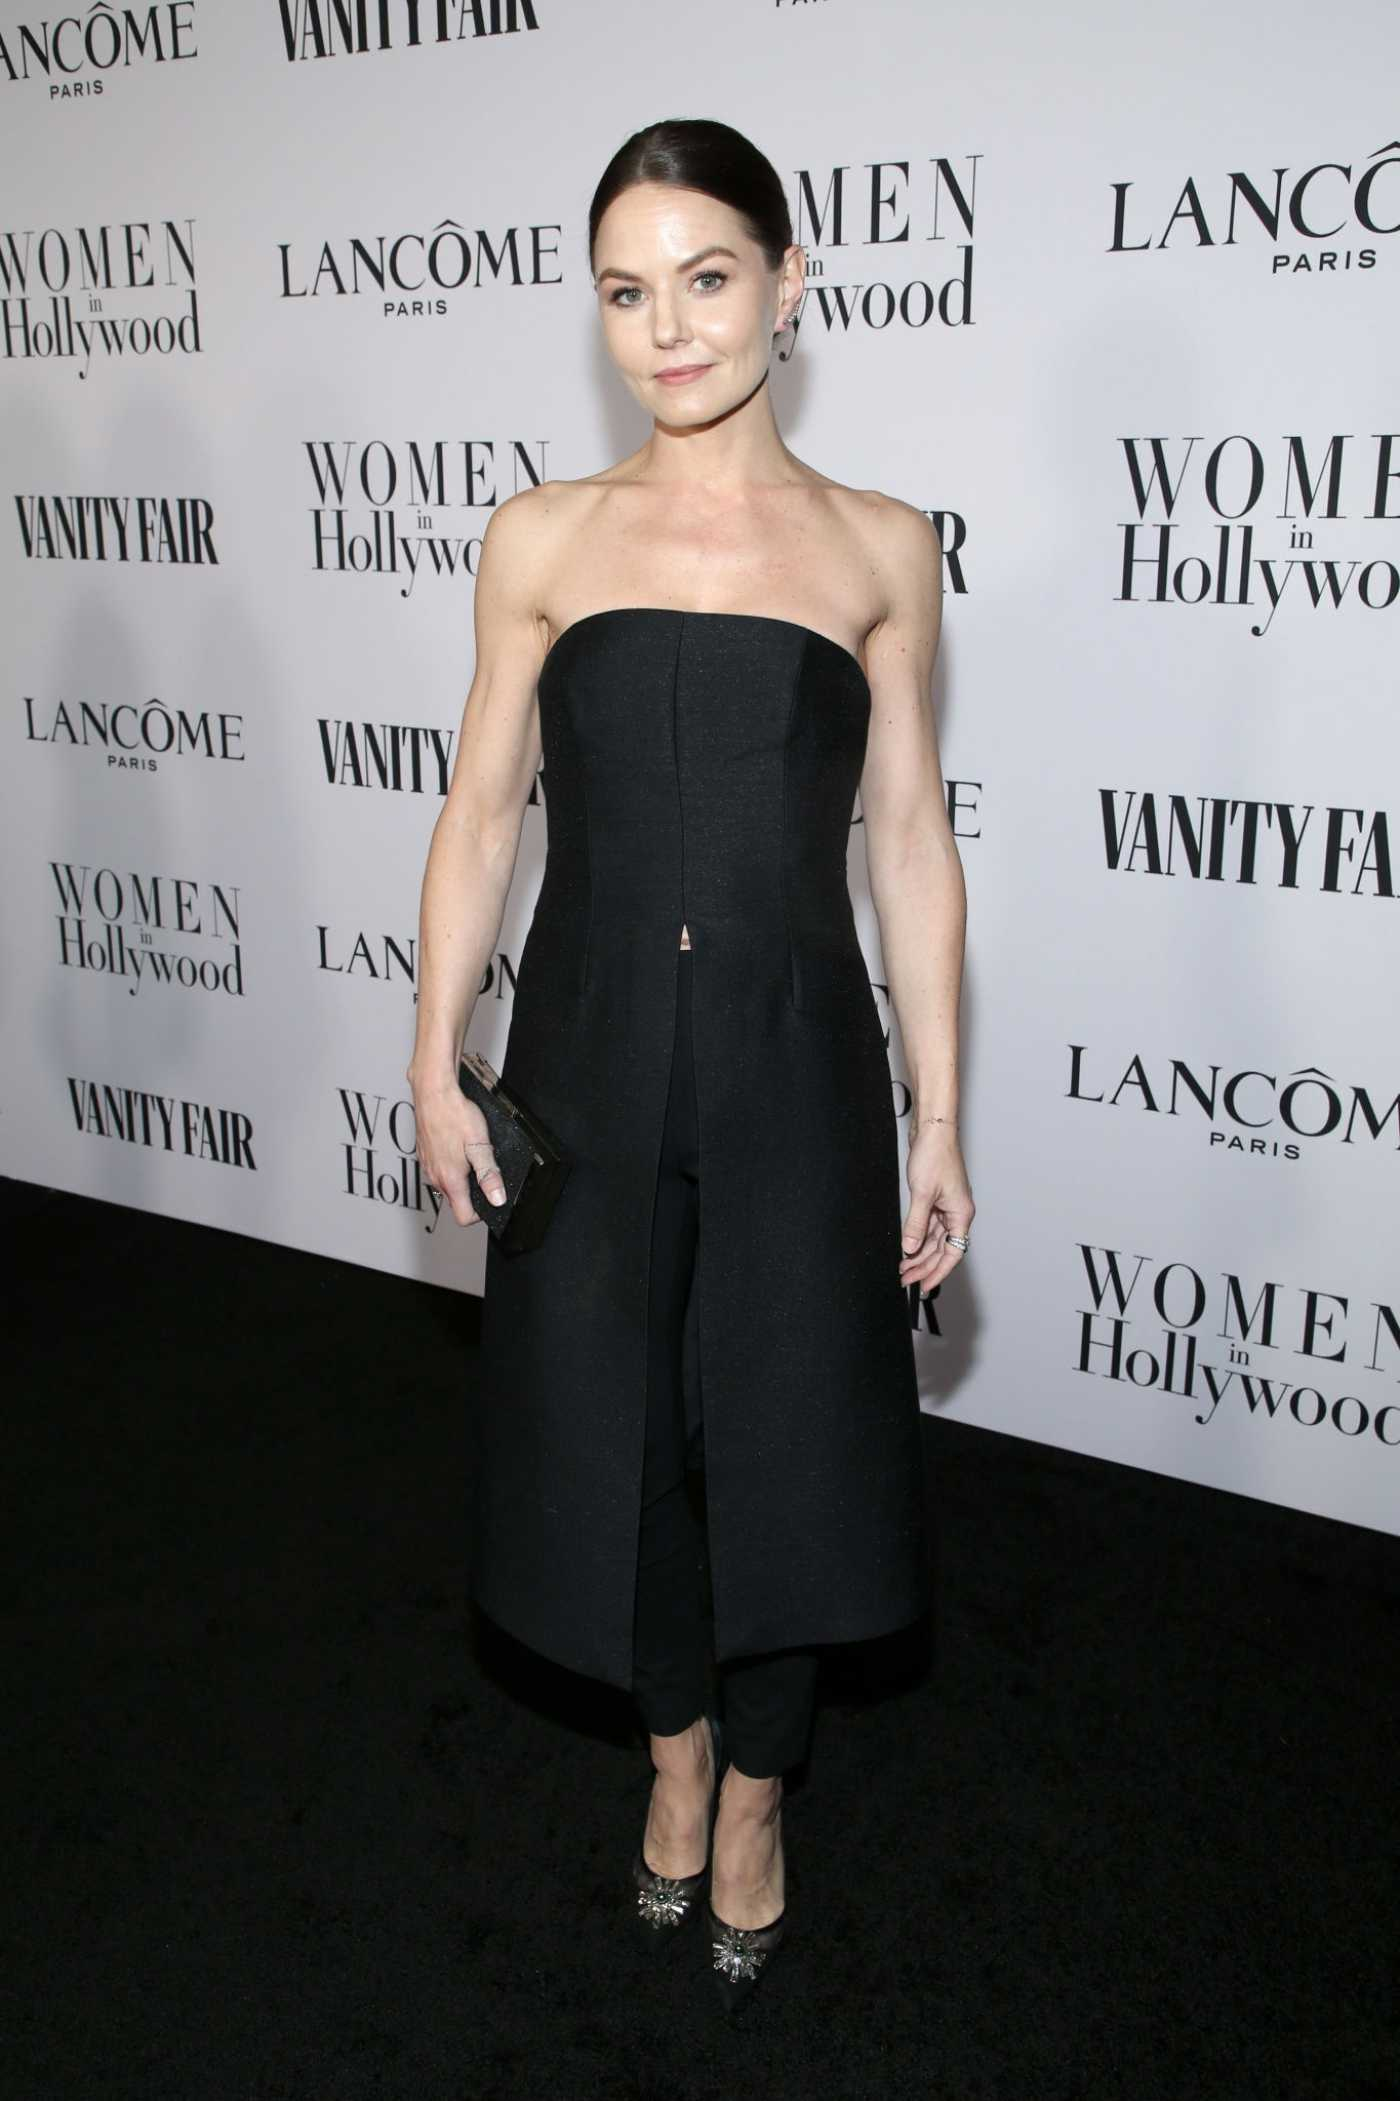 Jennifer Morrison Attends the Vanity Fair and Lancome Women in Hollywood Celebration at SoHo House in West Hollywood 02/06/2020